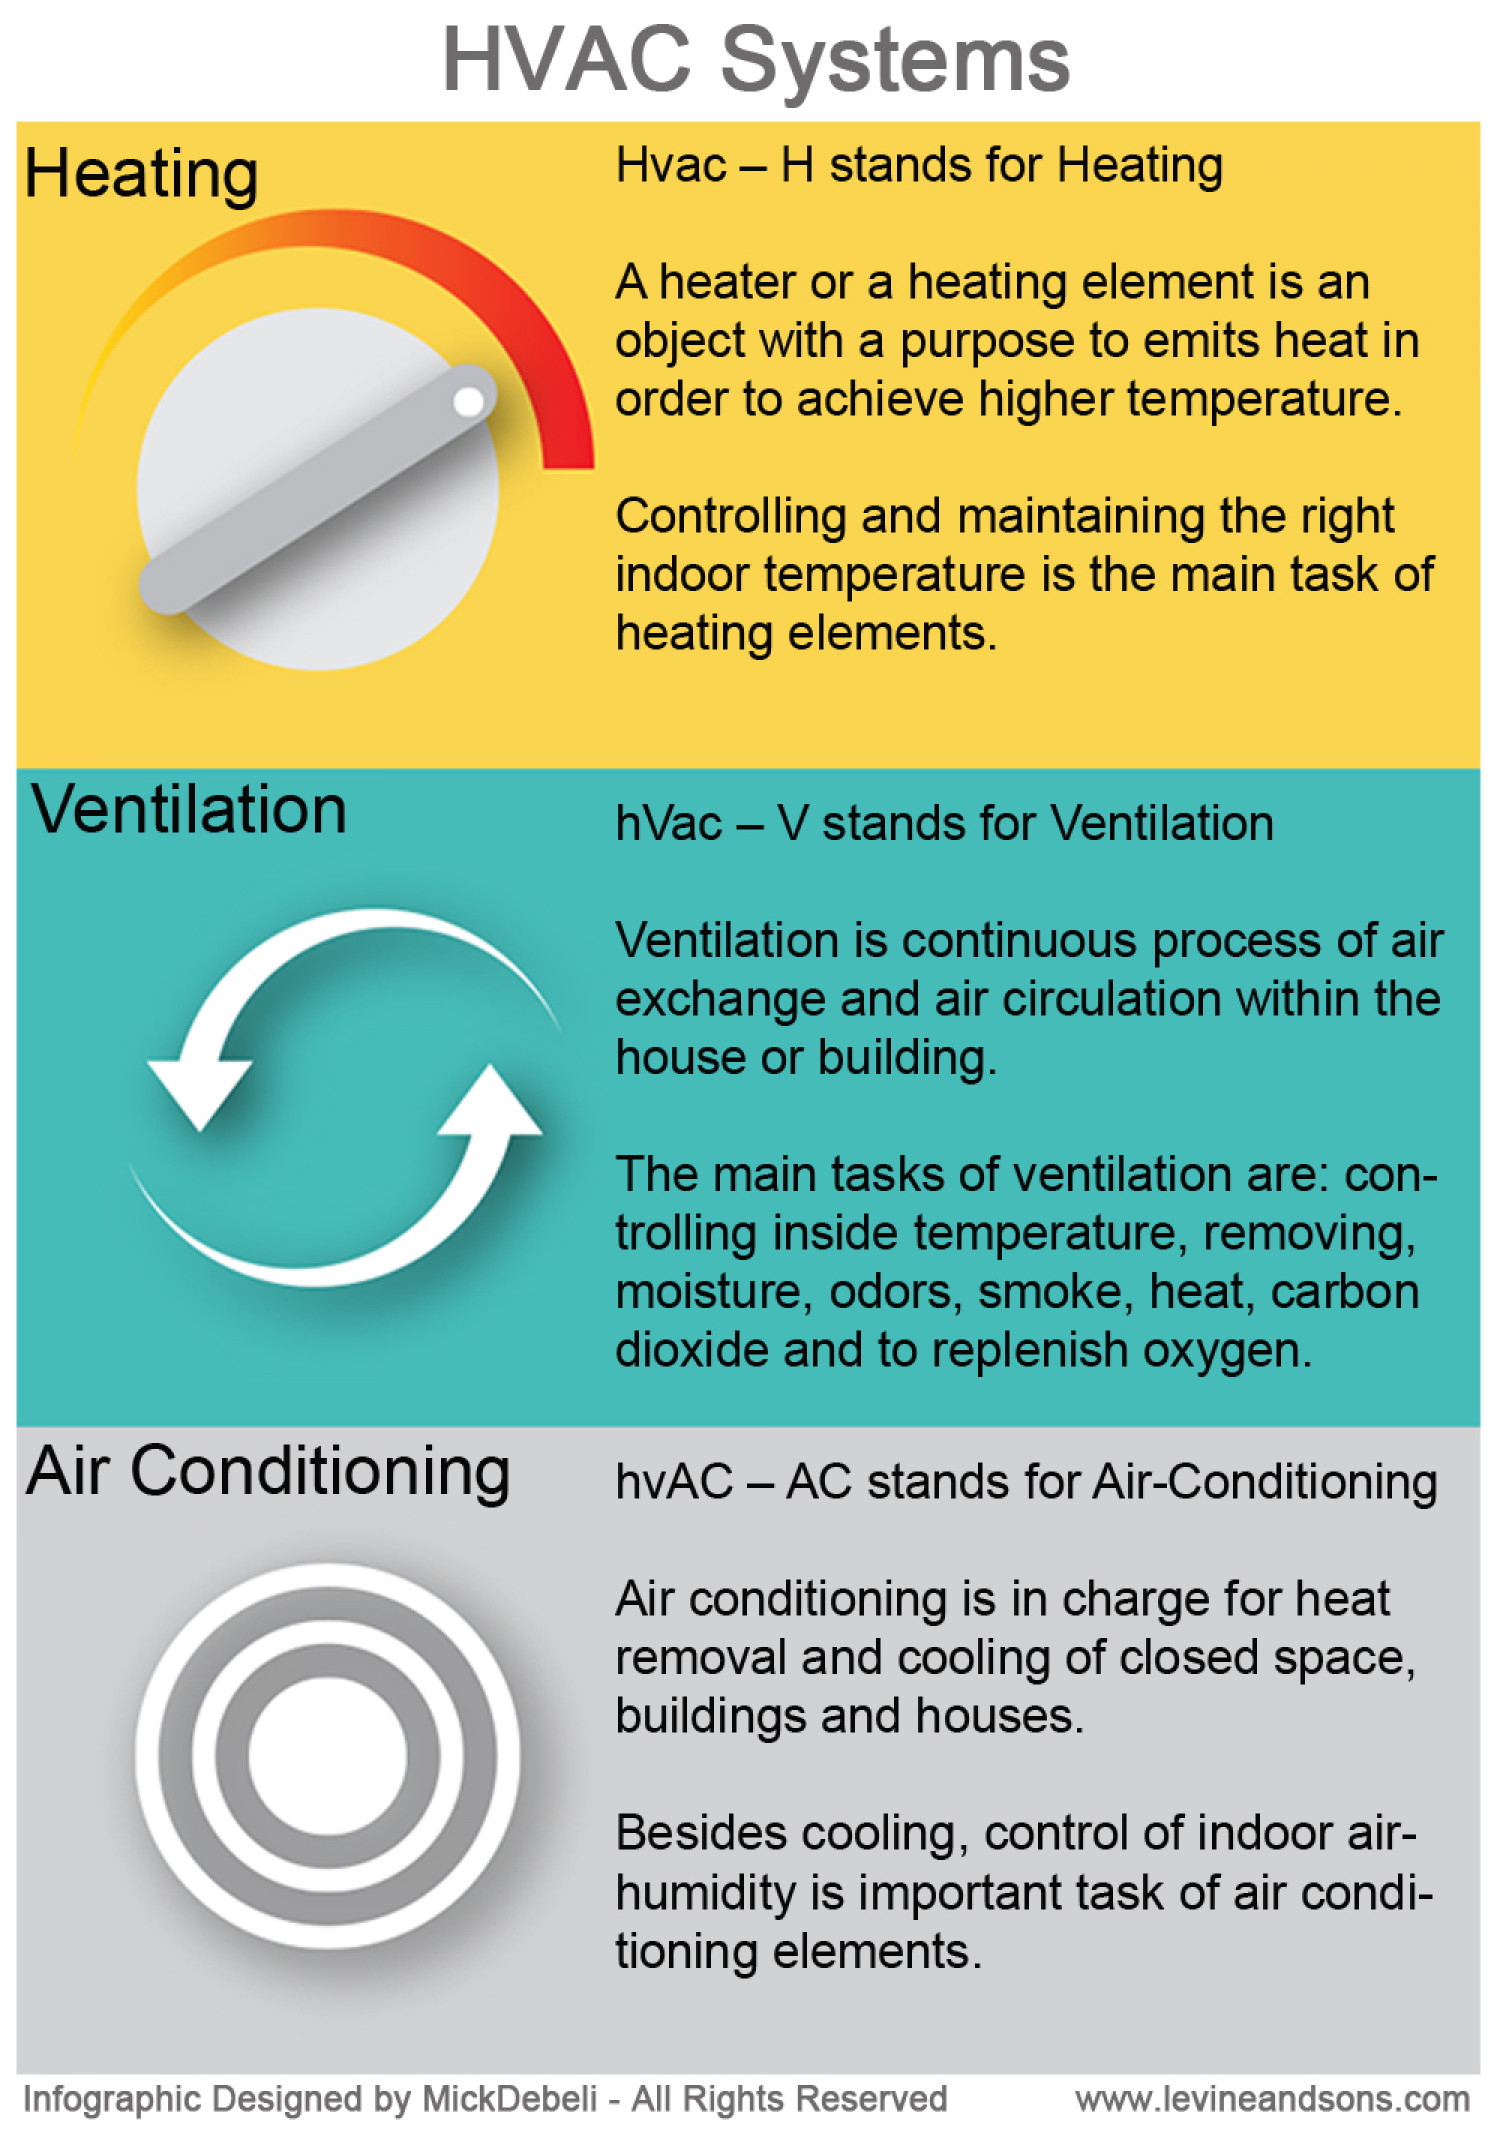 #C49C07 Hvac: Hvac Information Most Effective 9215 Air Conditioning Maintenance Risk Assessment pictures with 1500x2130 px on helpvideos.info - Air Conditioners, Air Coolers and more